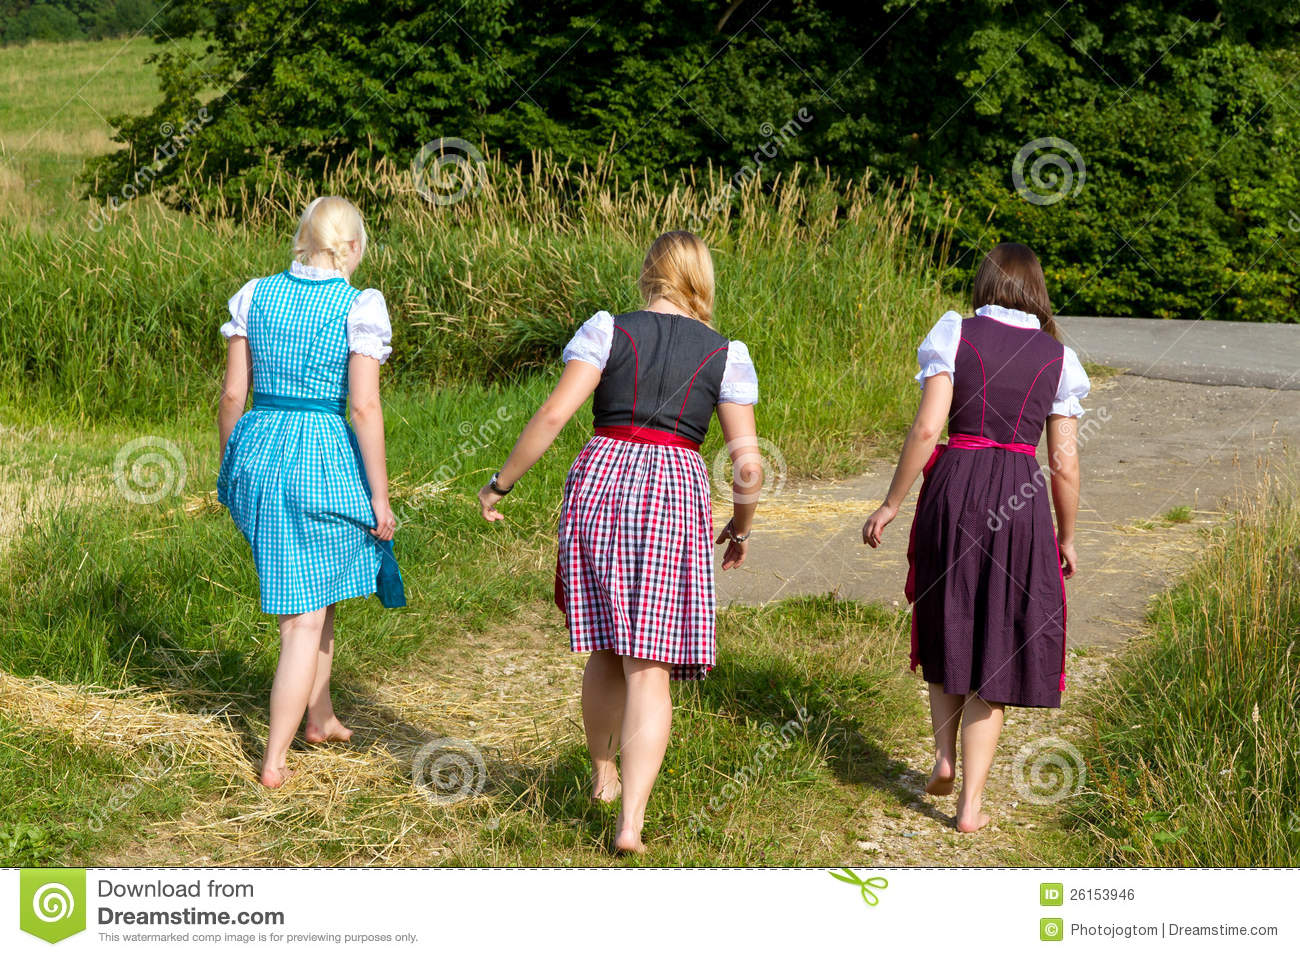 https://thumbs.dreamstime.com/z/three-girls-dirndl-26153946.jpg